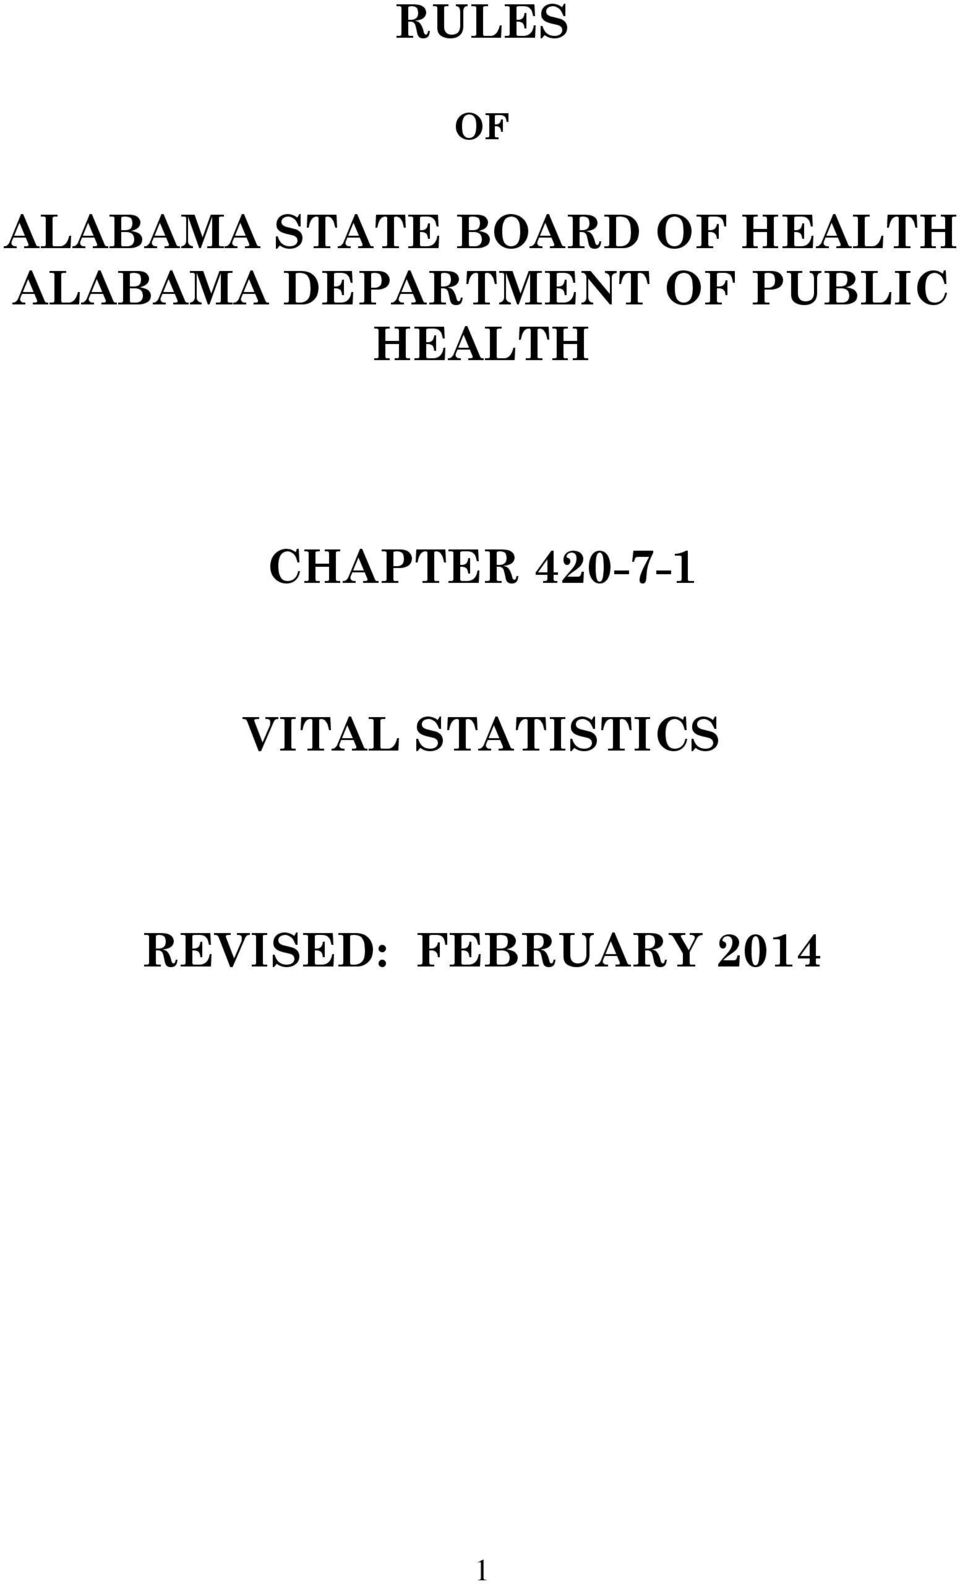 PUBLIC HEALTH CHAPTER 420-7-1